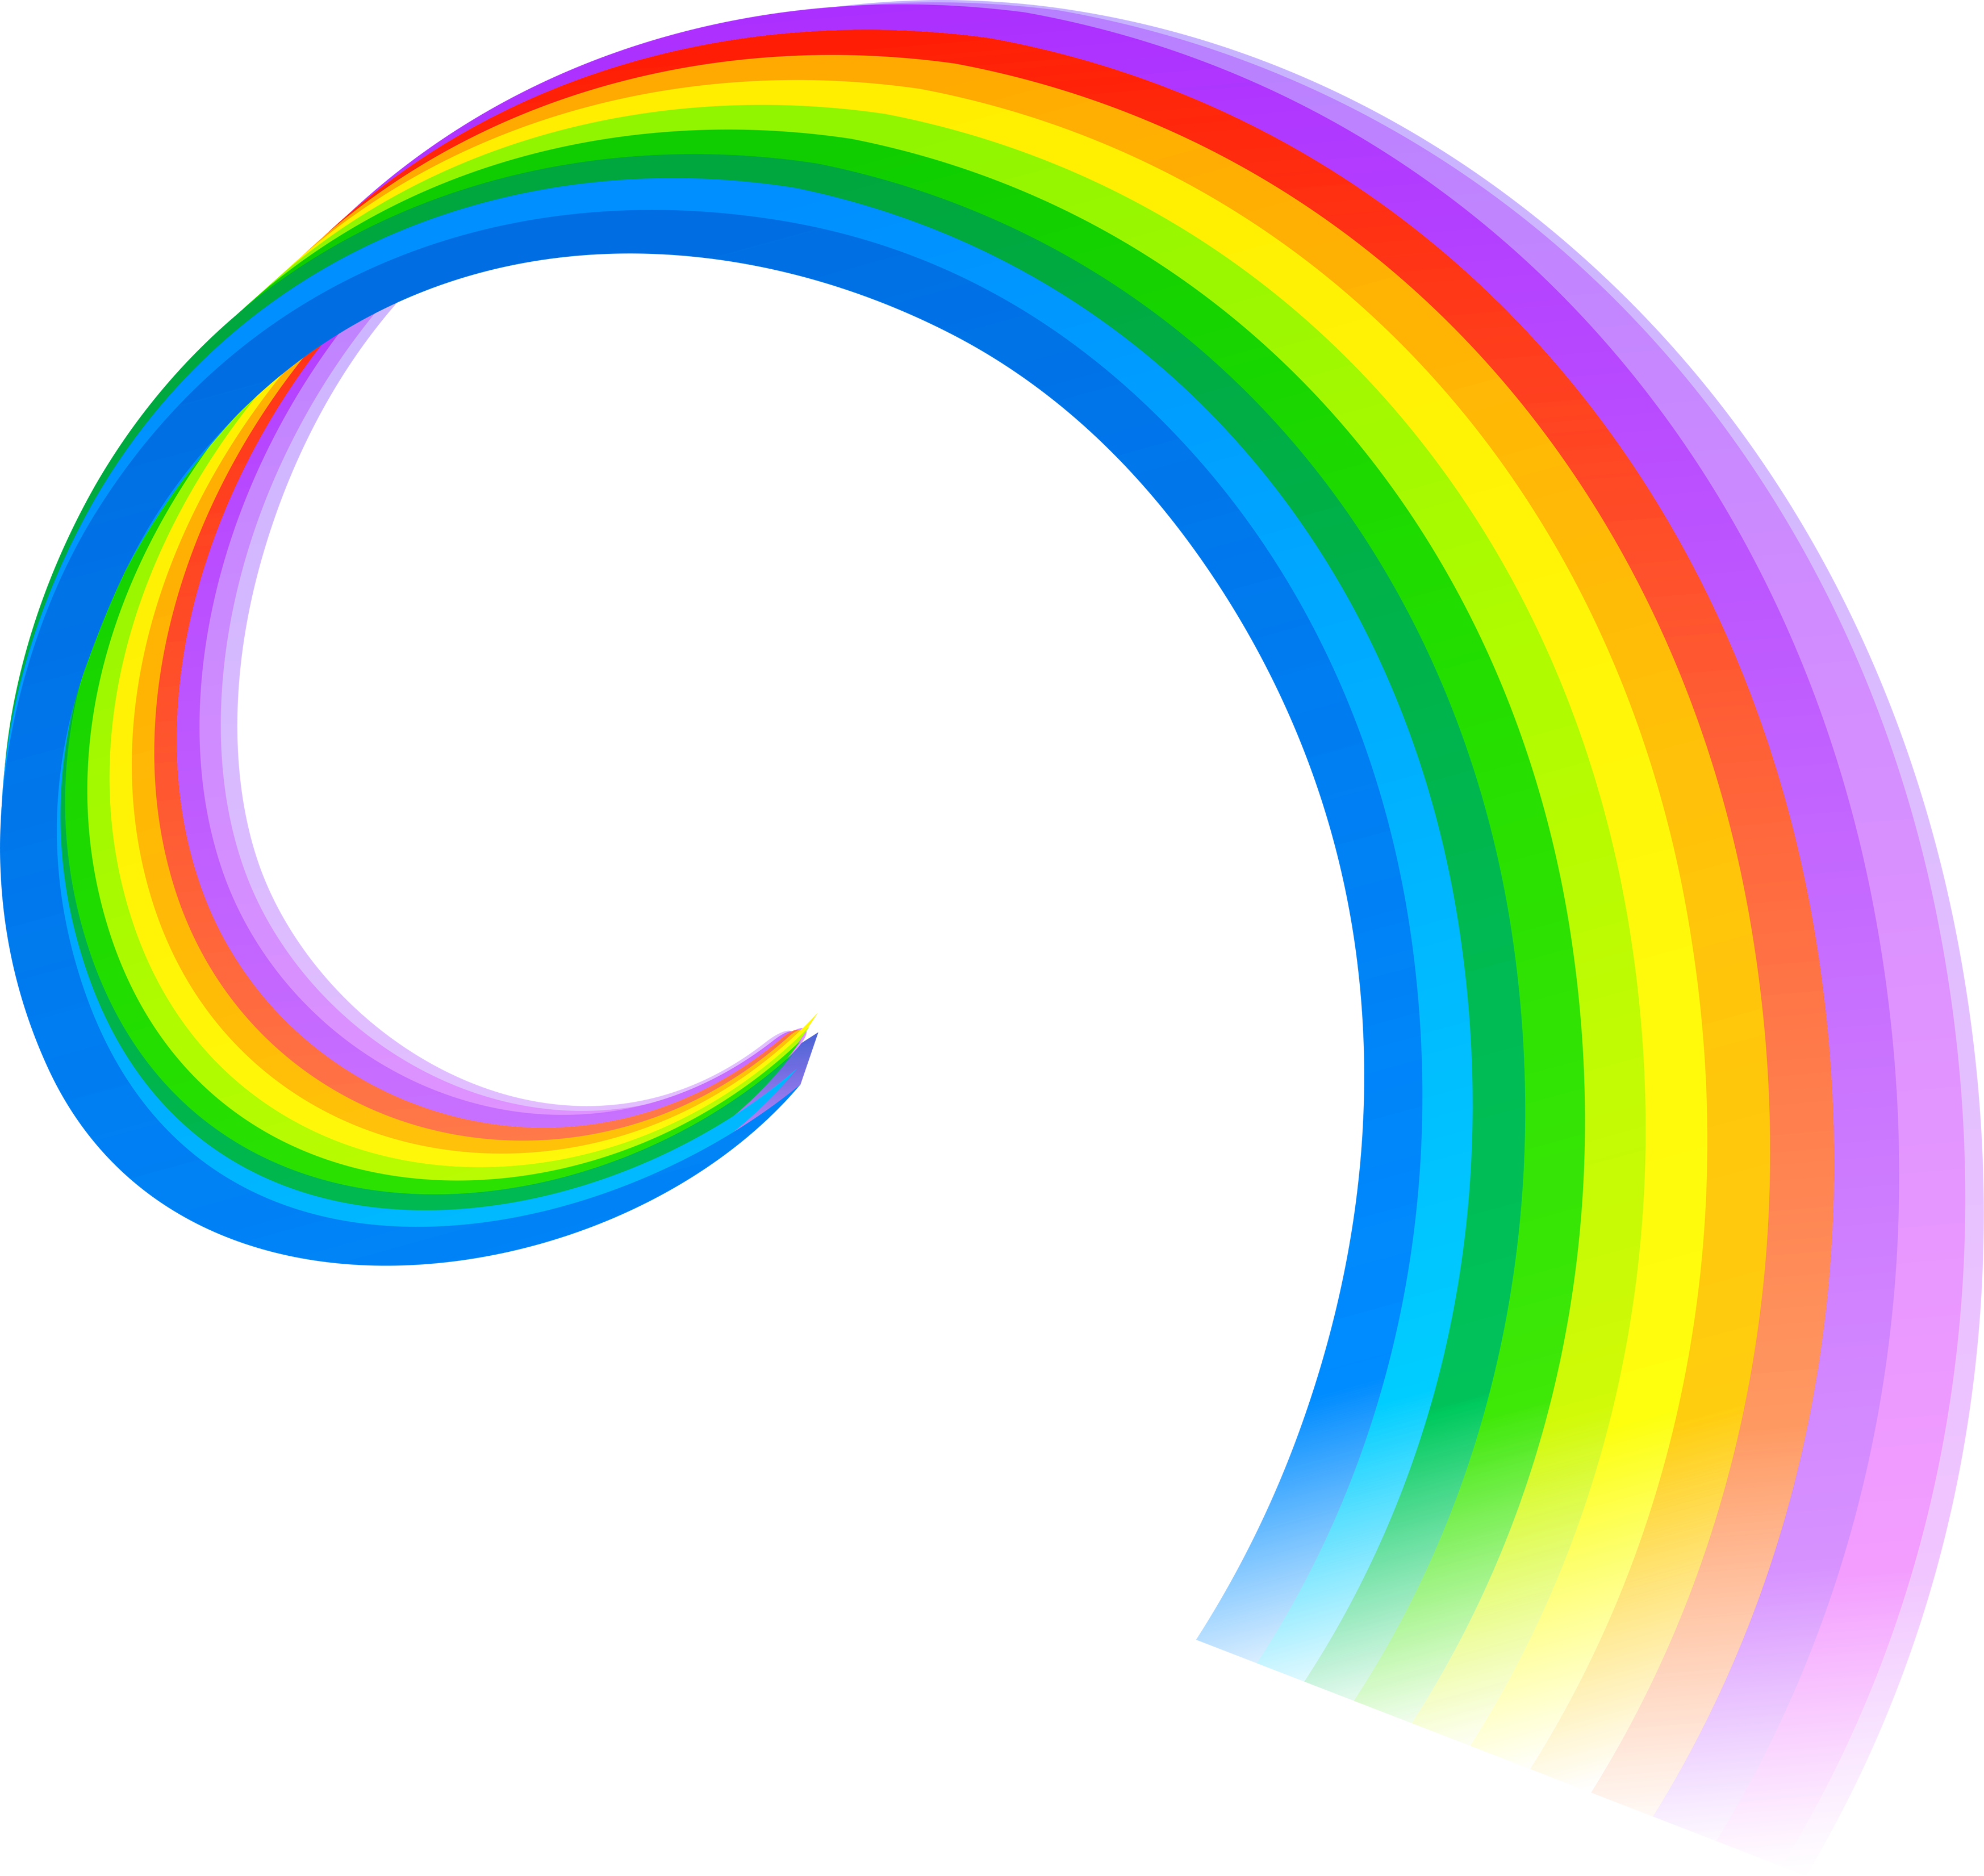 Rainbow PNG Image - PurePNG | Free transparent CC0 PNG ...